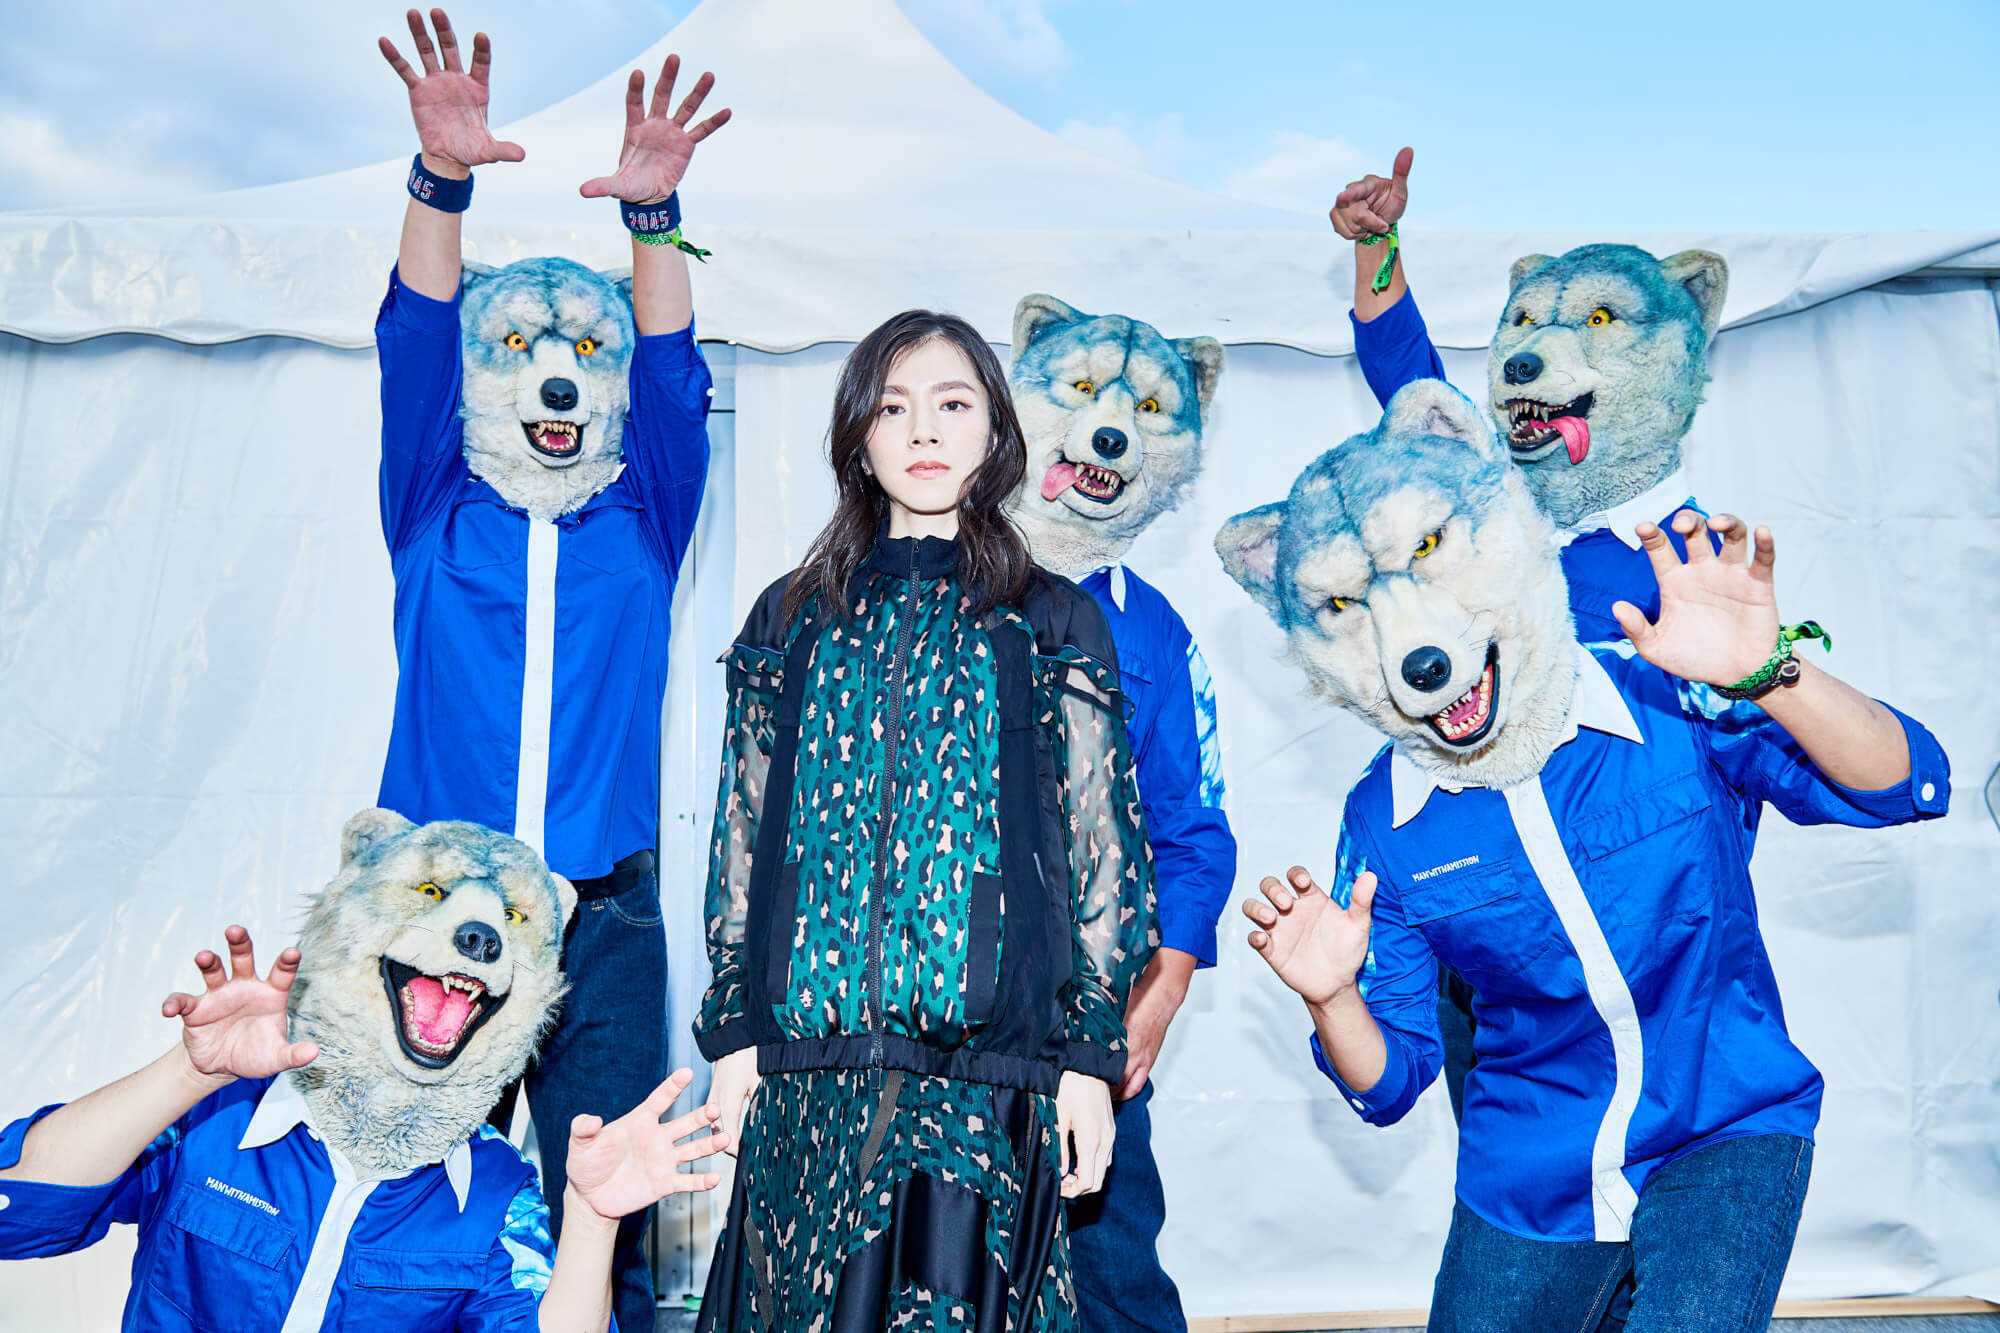 milet MAN WITH A MISSION